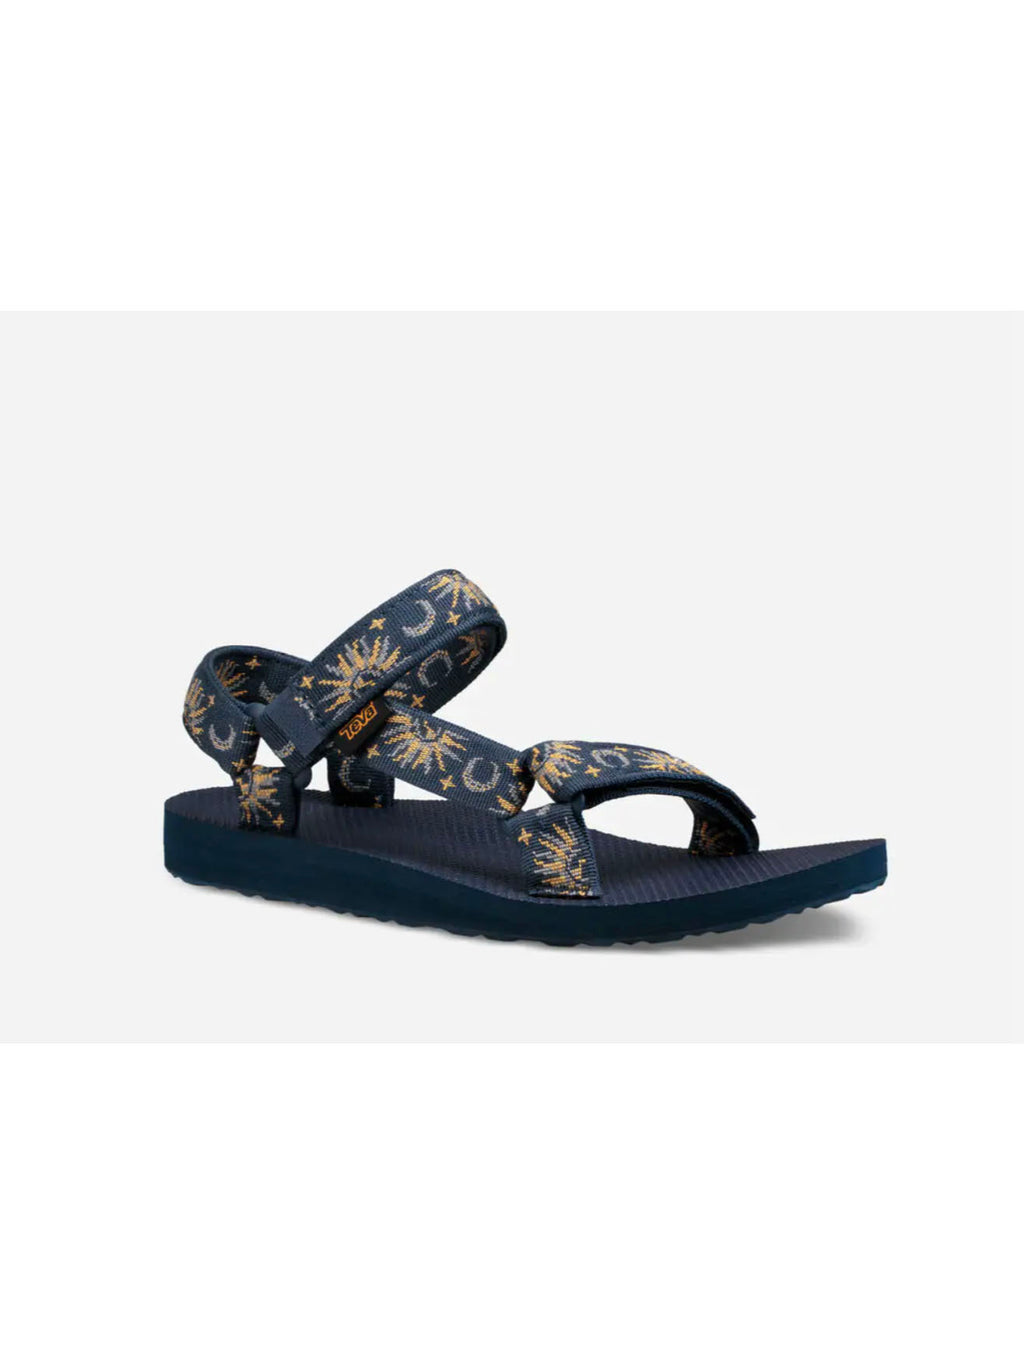 Teva Universal in Navy Star